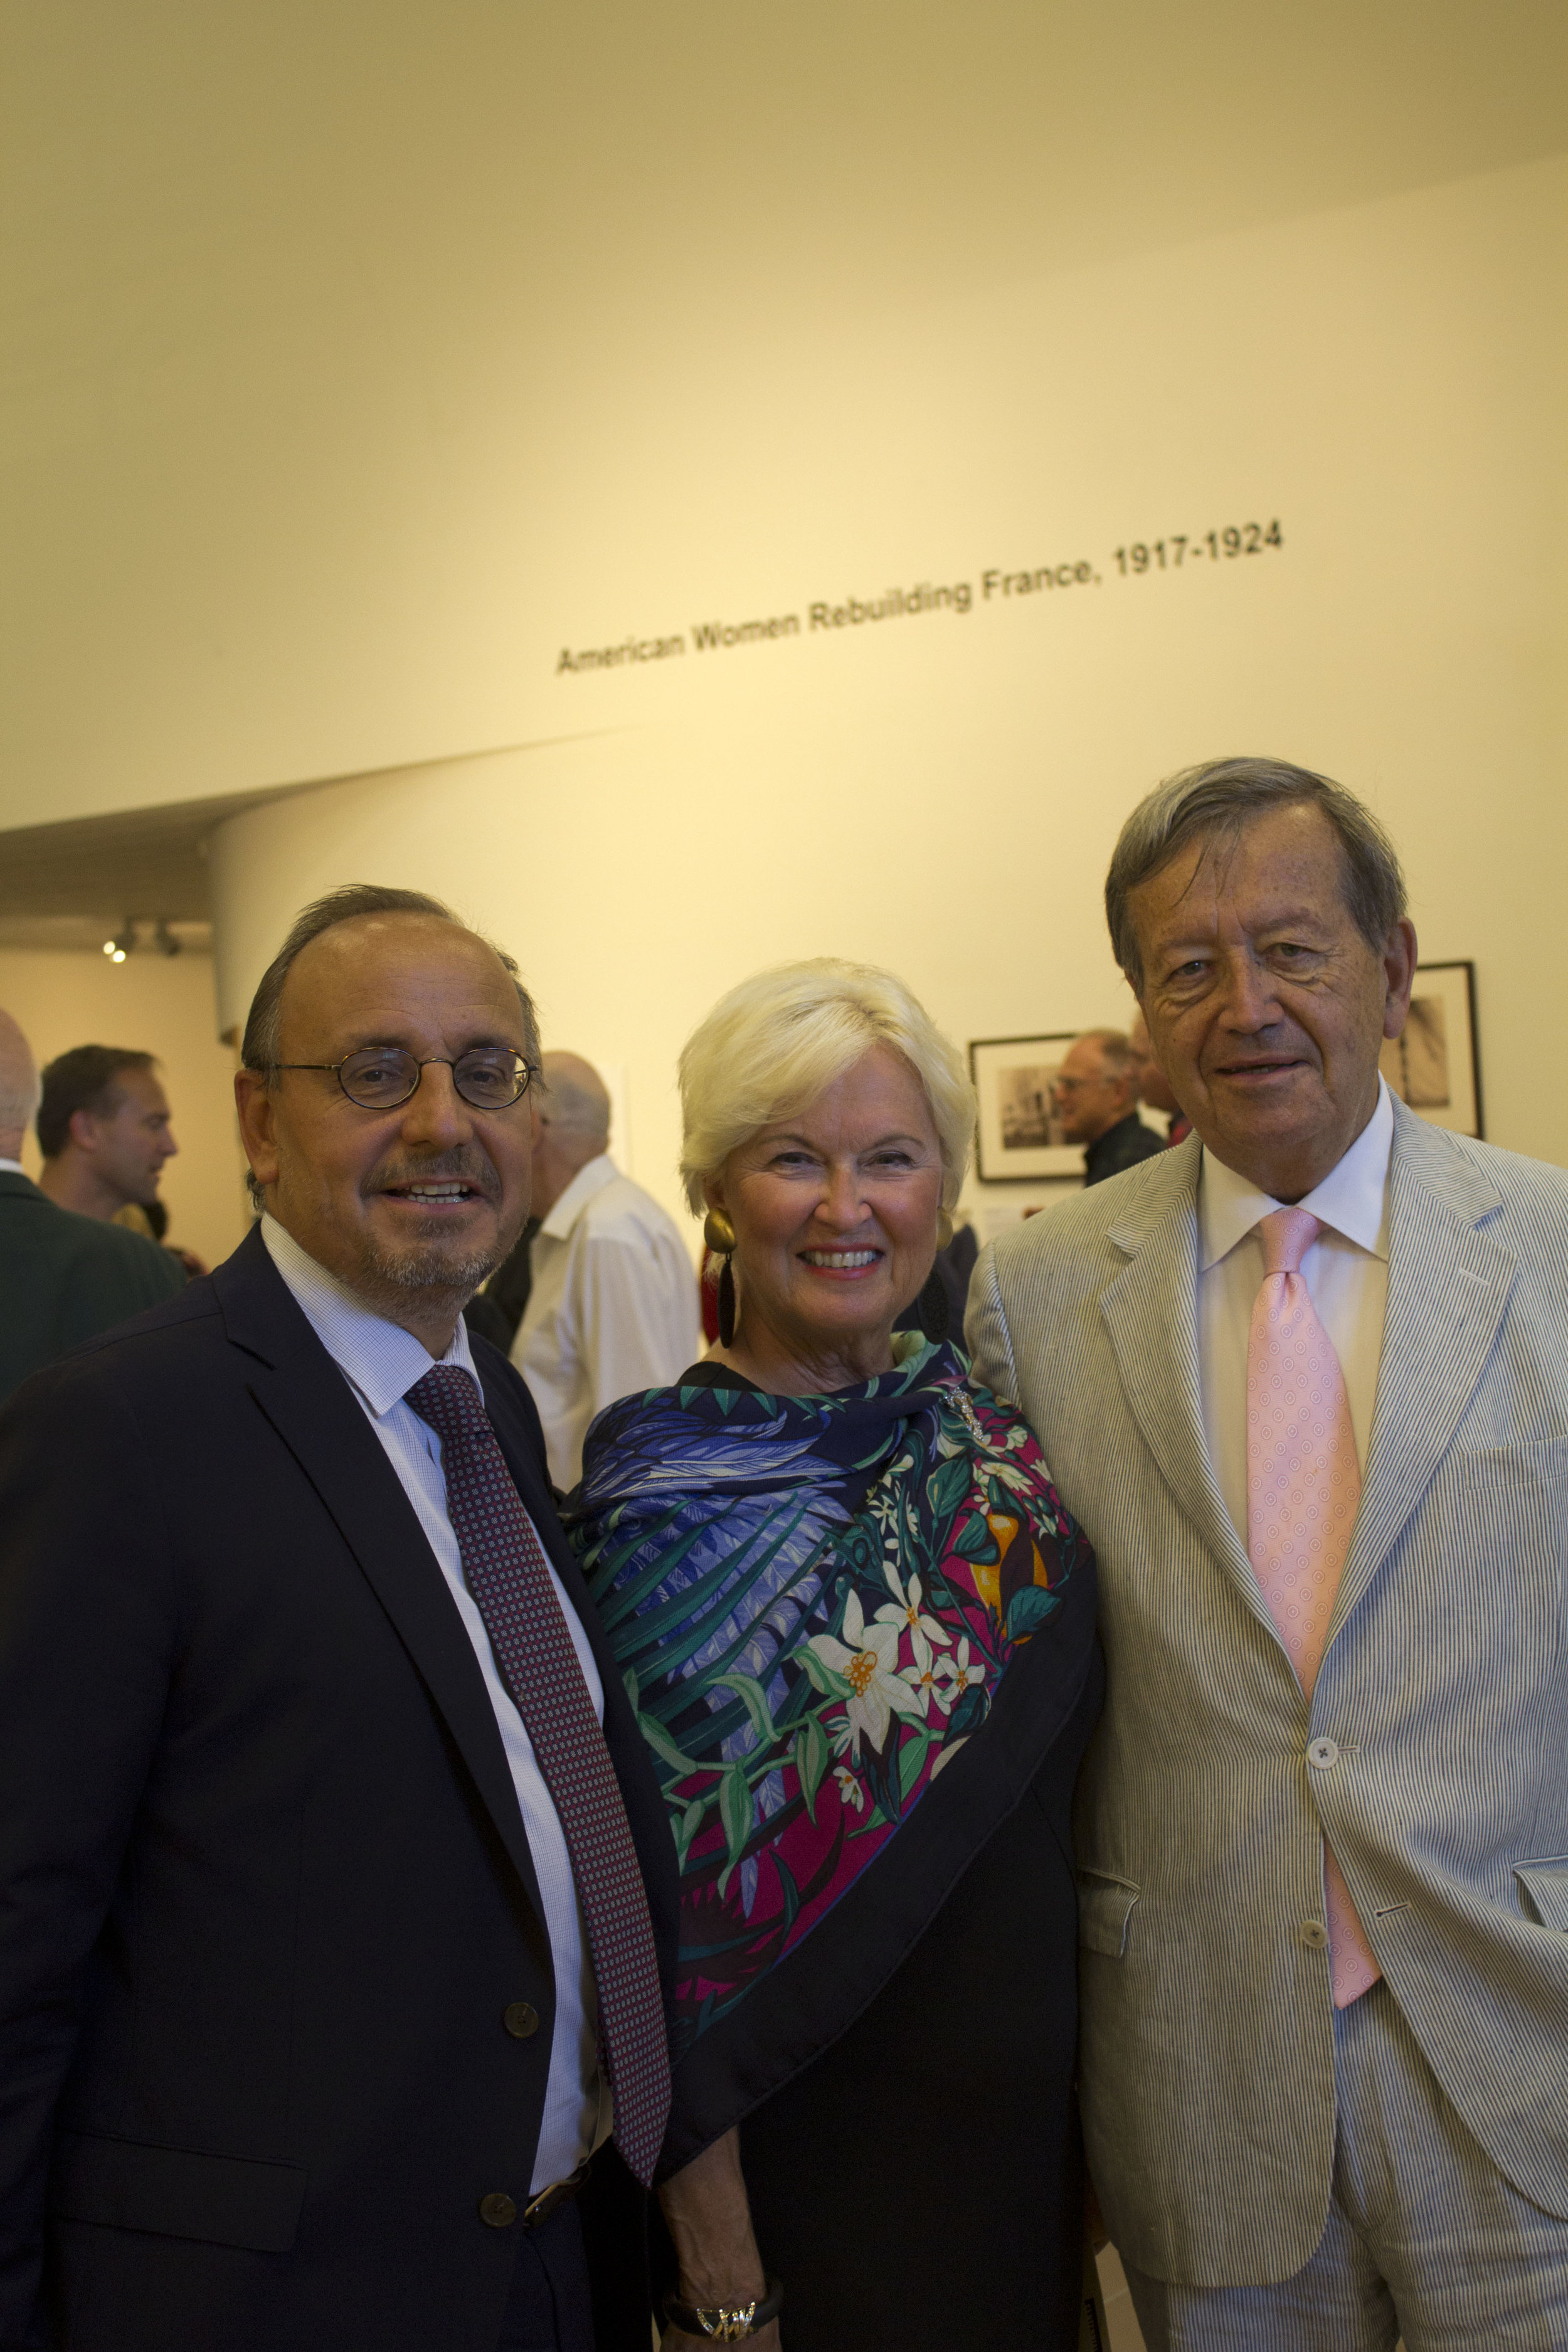 AWRF_USM-OpeningReception_Aug2017_1.jpg